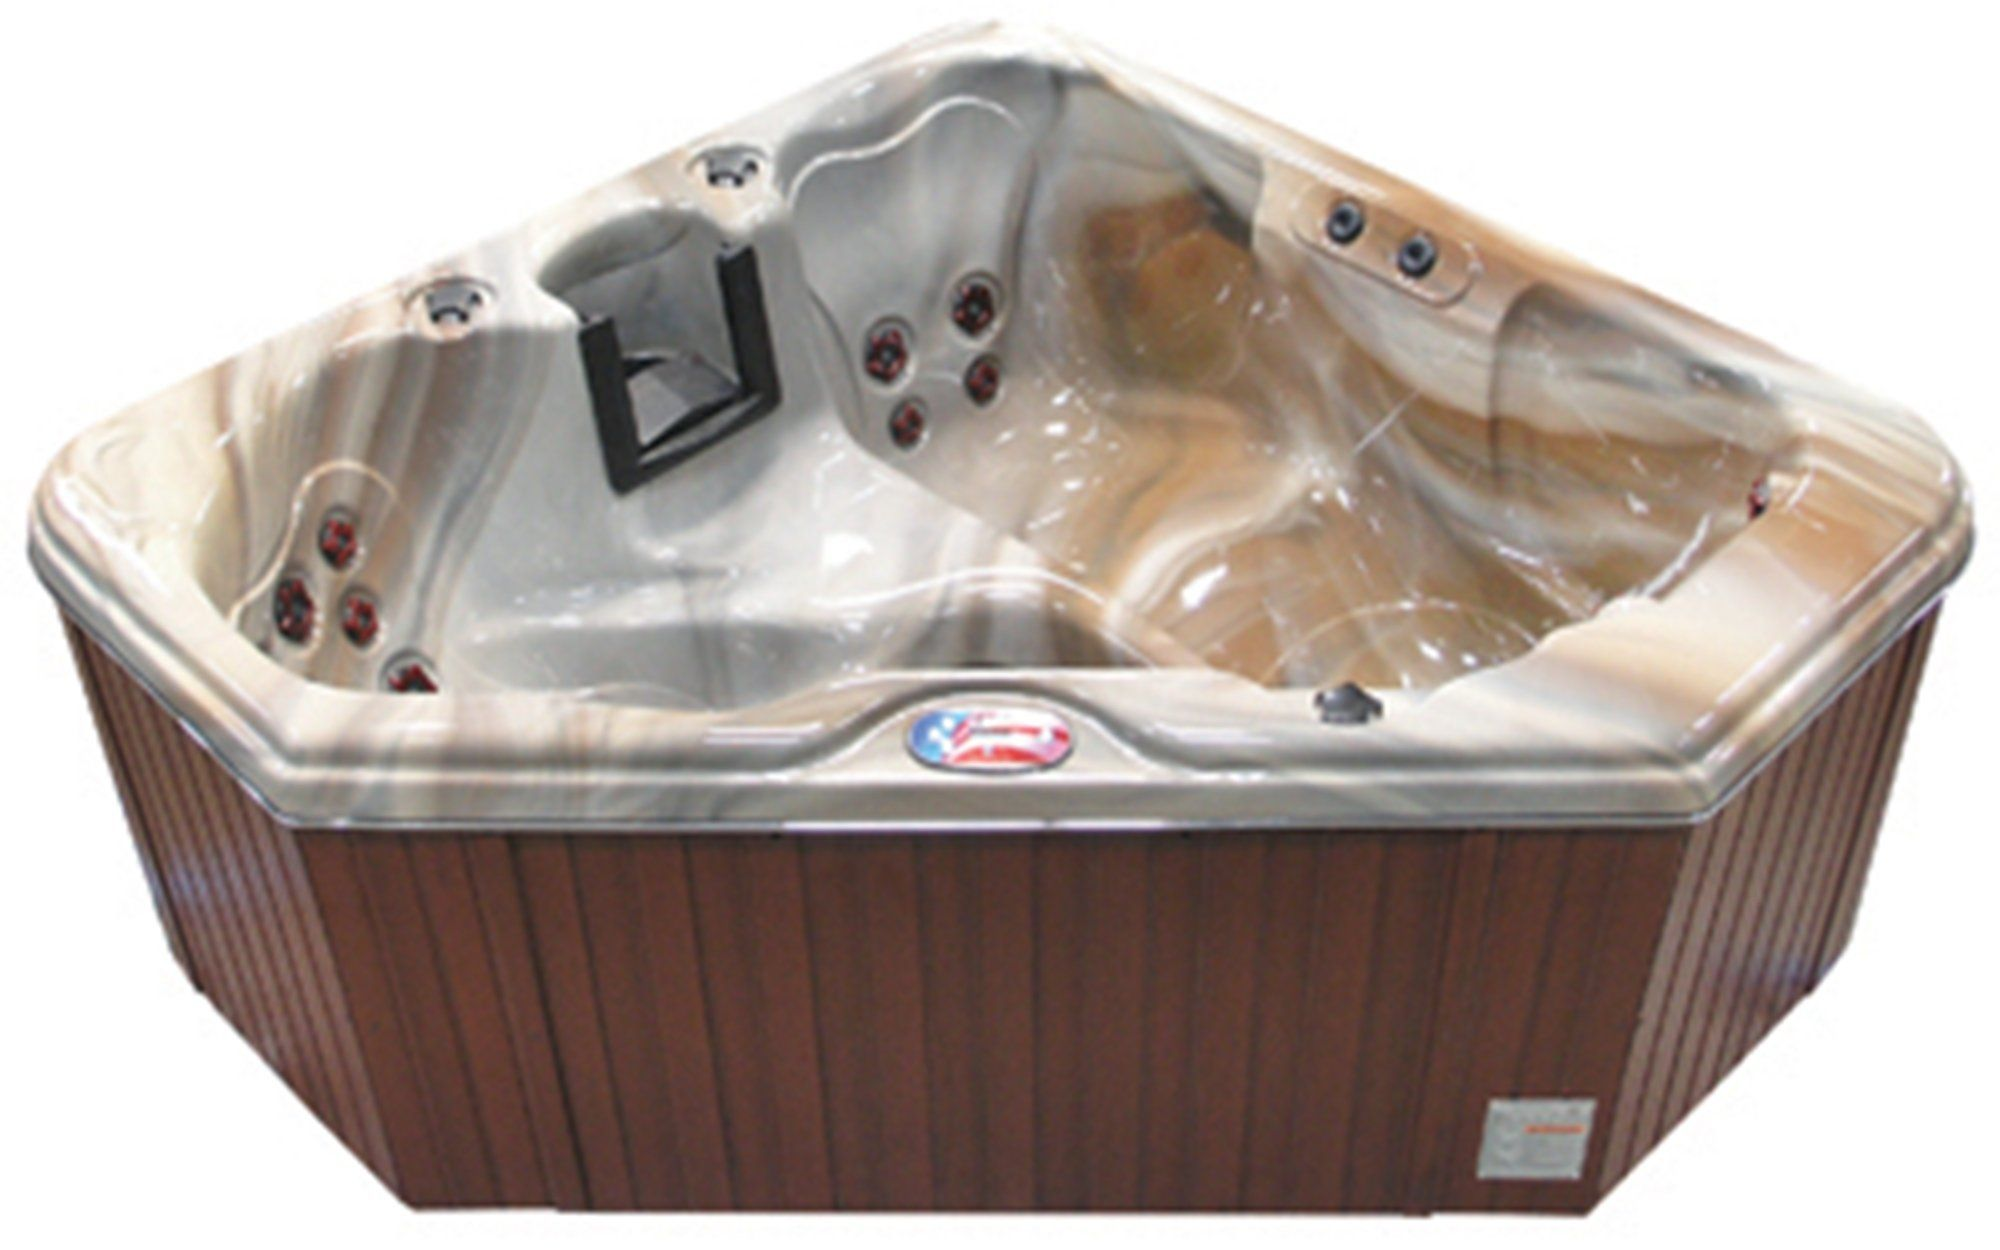 Amazon.com : American Spas AM-628TM 2-Person 28-Jet Triangle Spa ...